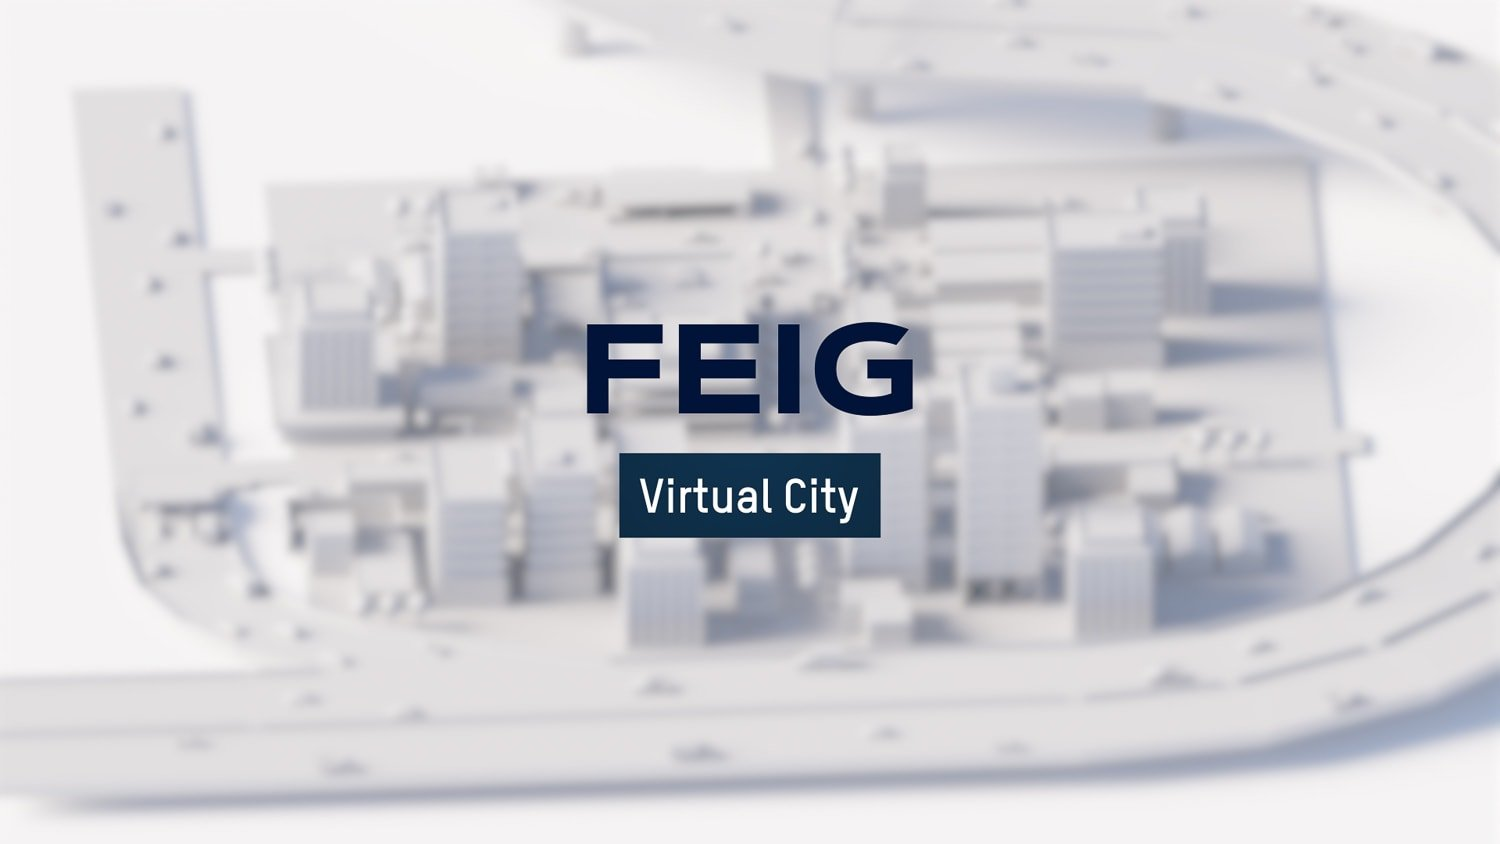 2021 01 04 FEIG Erklärvideo Virtual City Screenshot 11